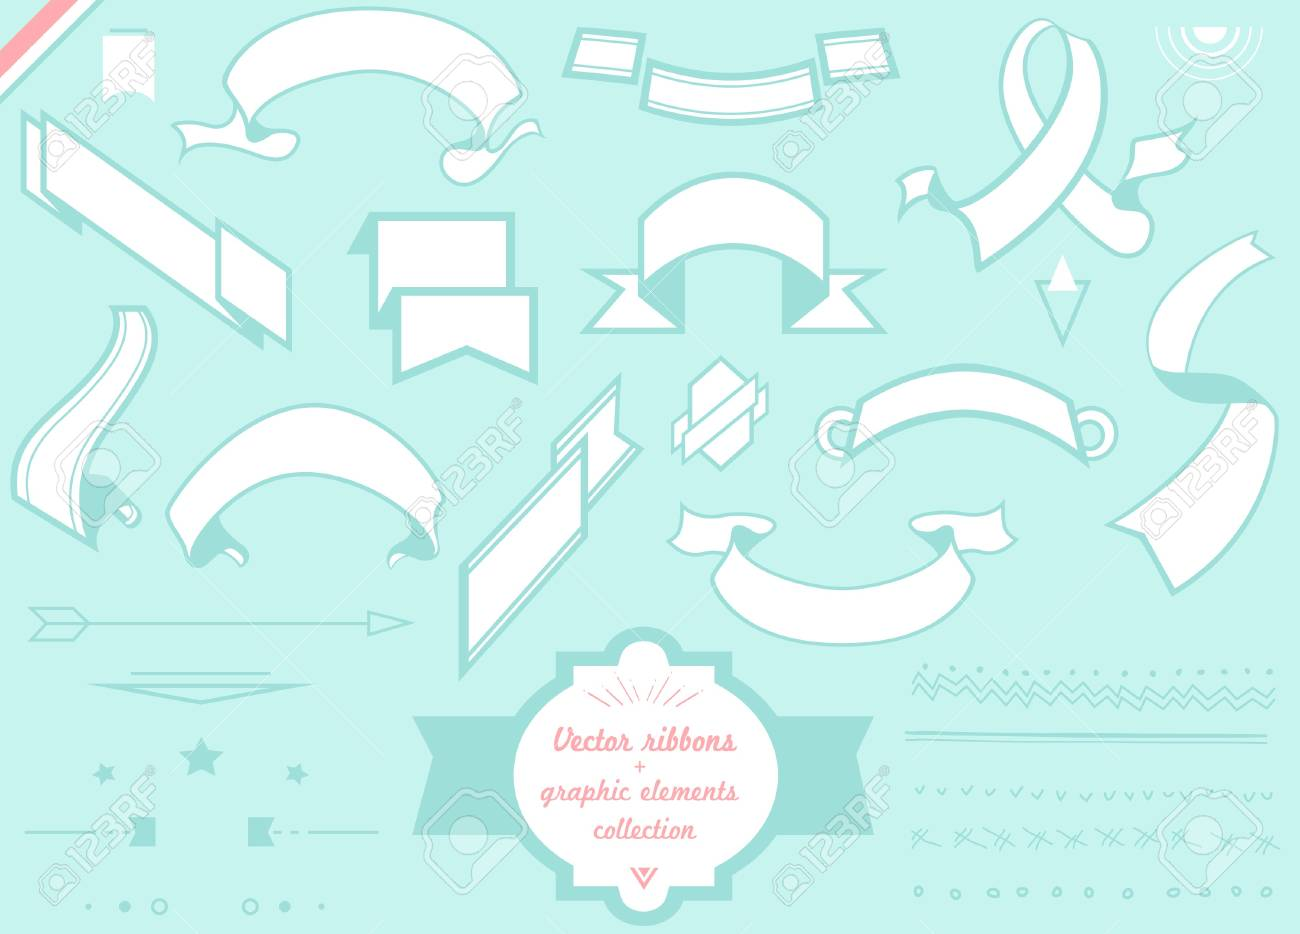 vector ribbons, frames and graphic elements collection Stock Vector - 20325434